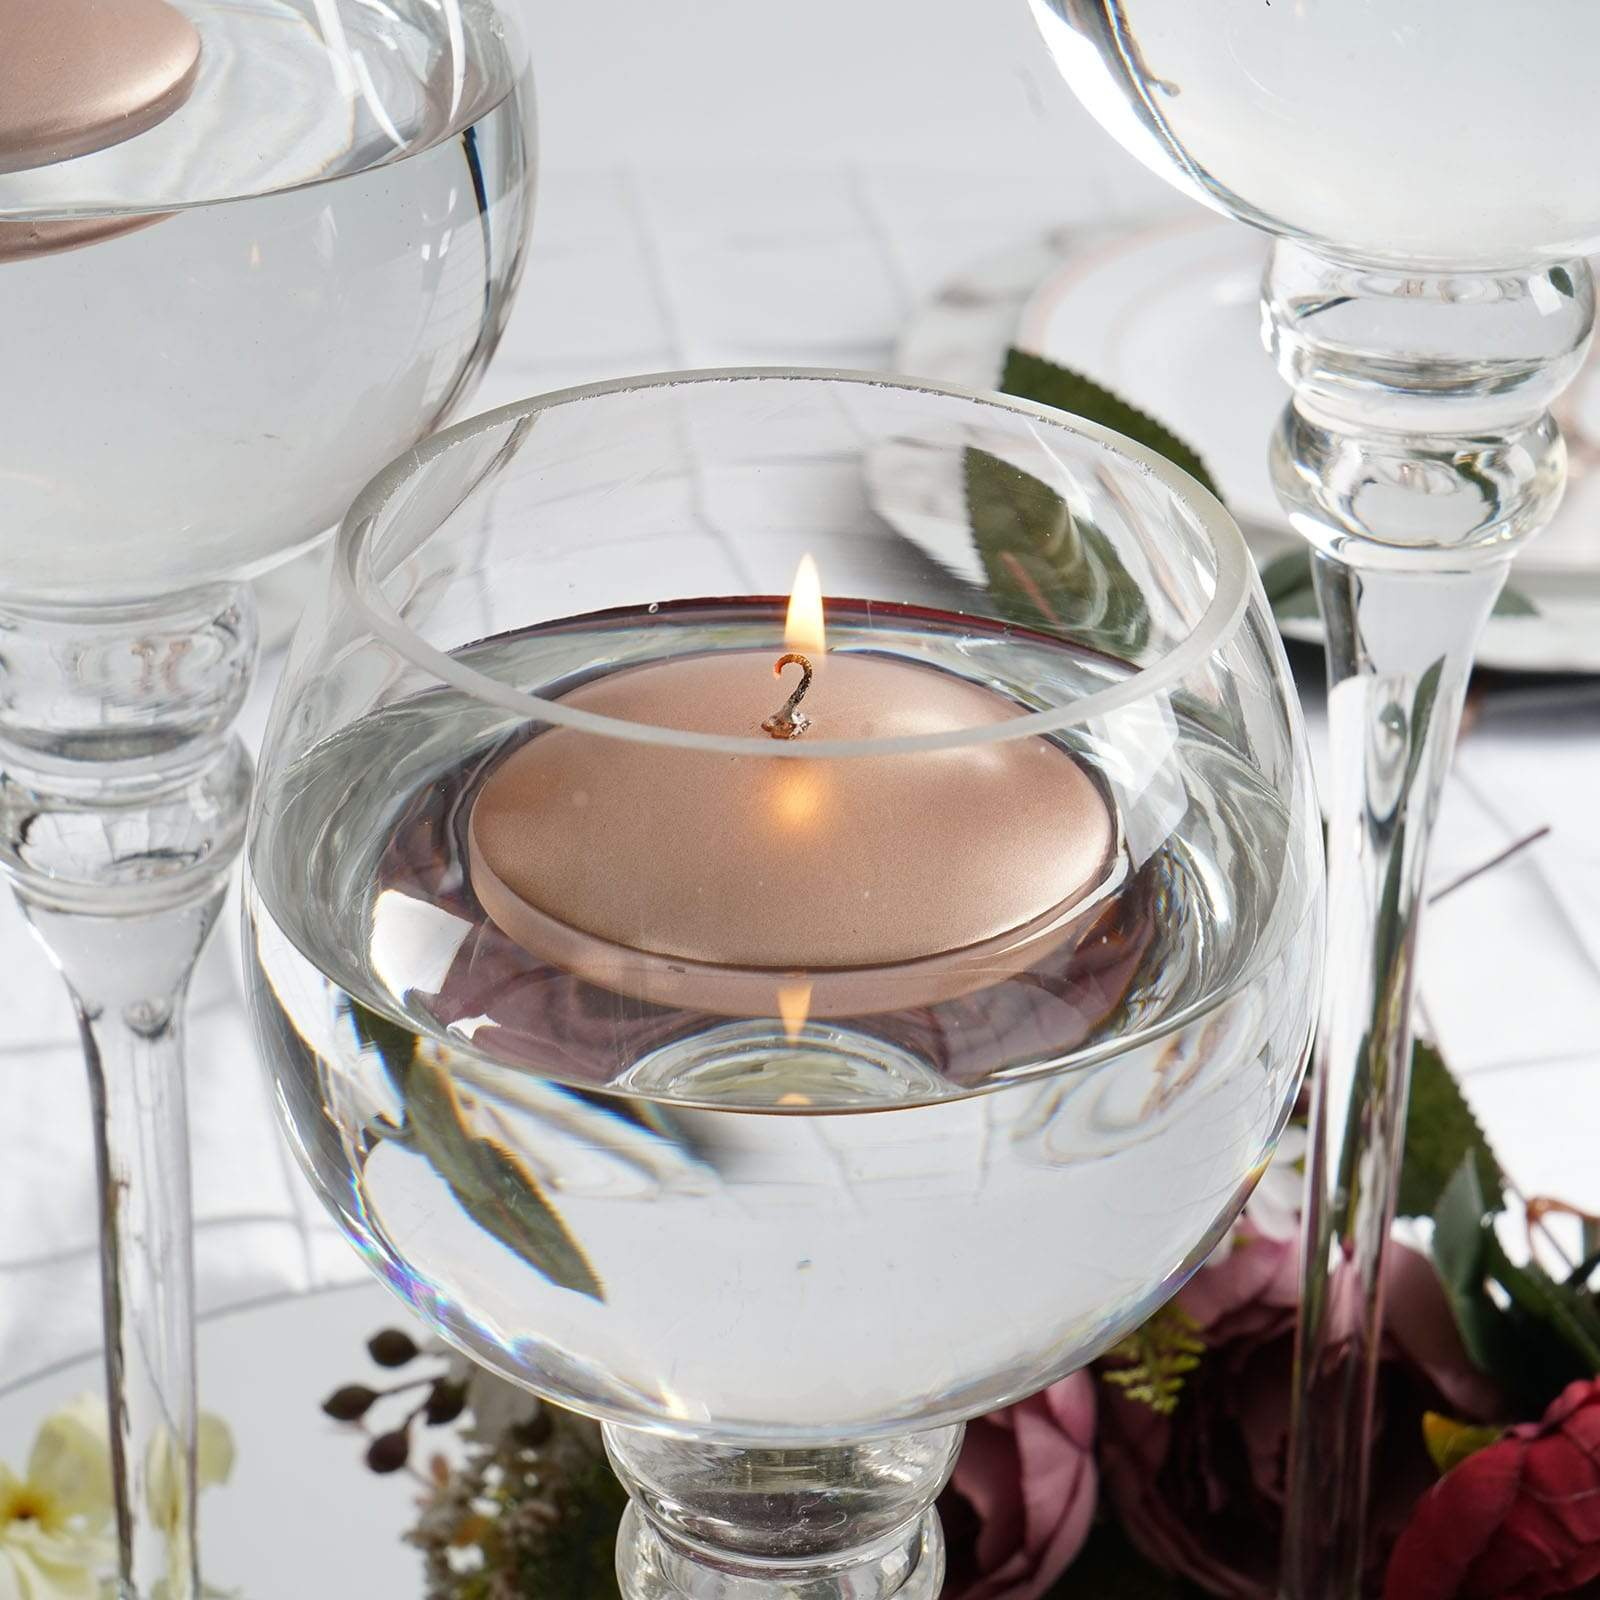 3-Inch wide Wedding Unscented Discs Round Floating Candles Centerpieces Sale